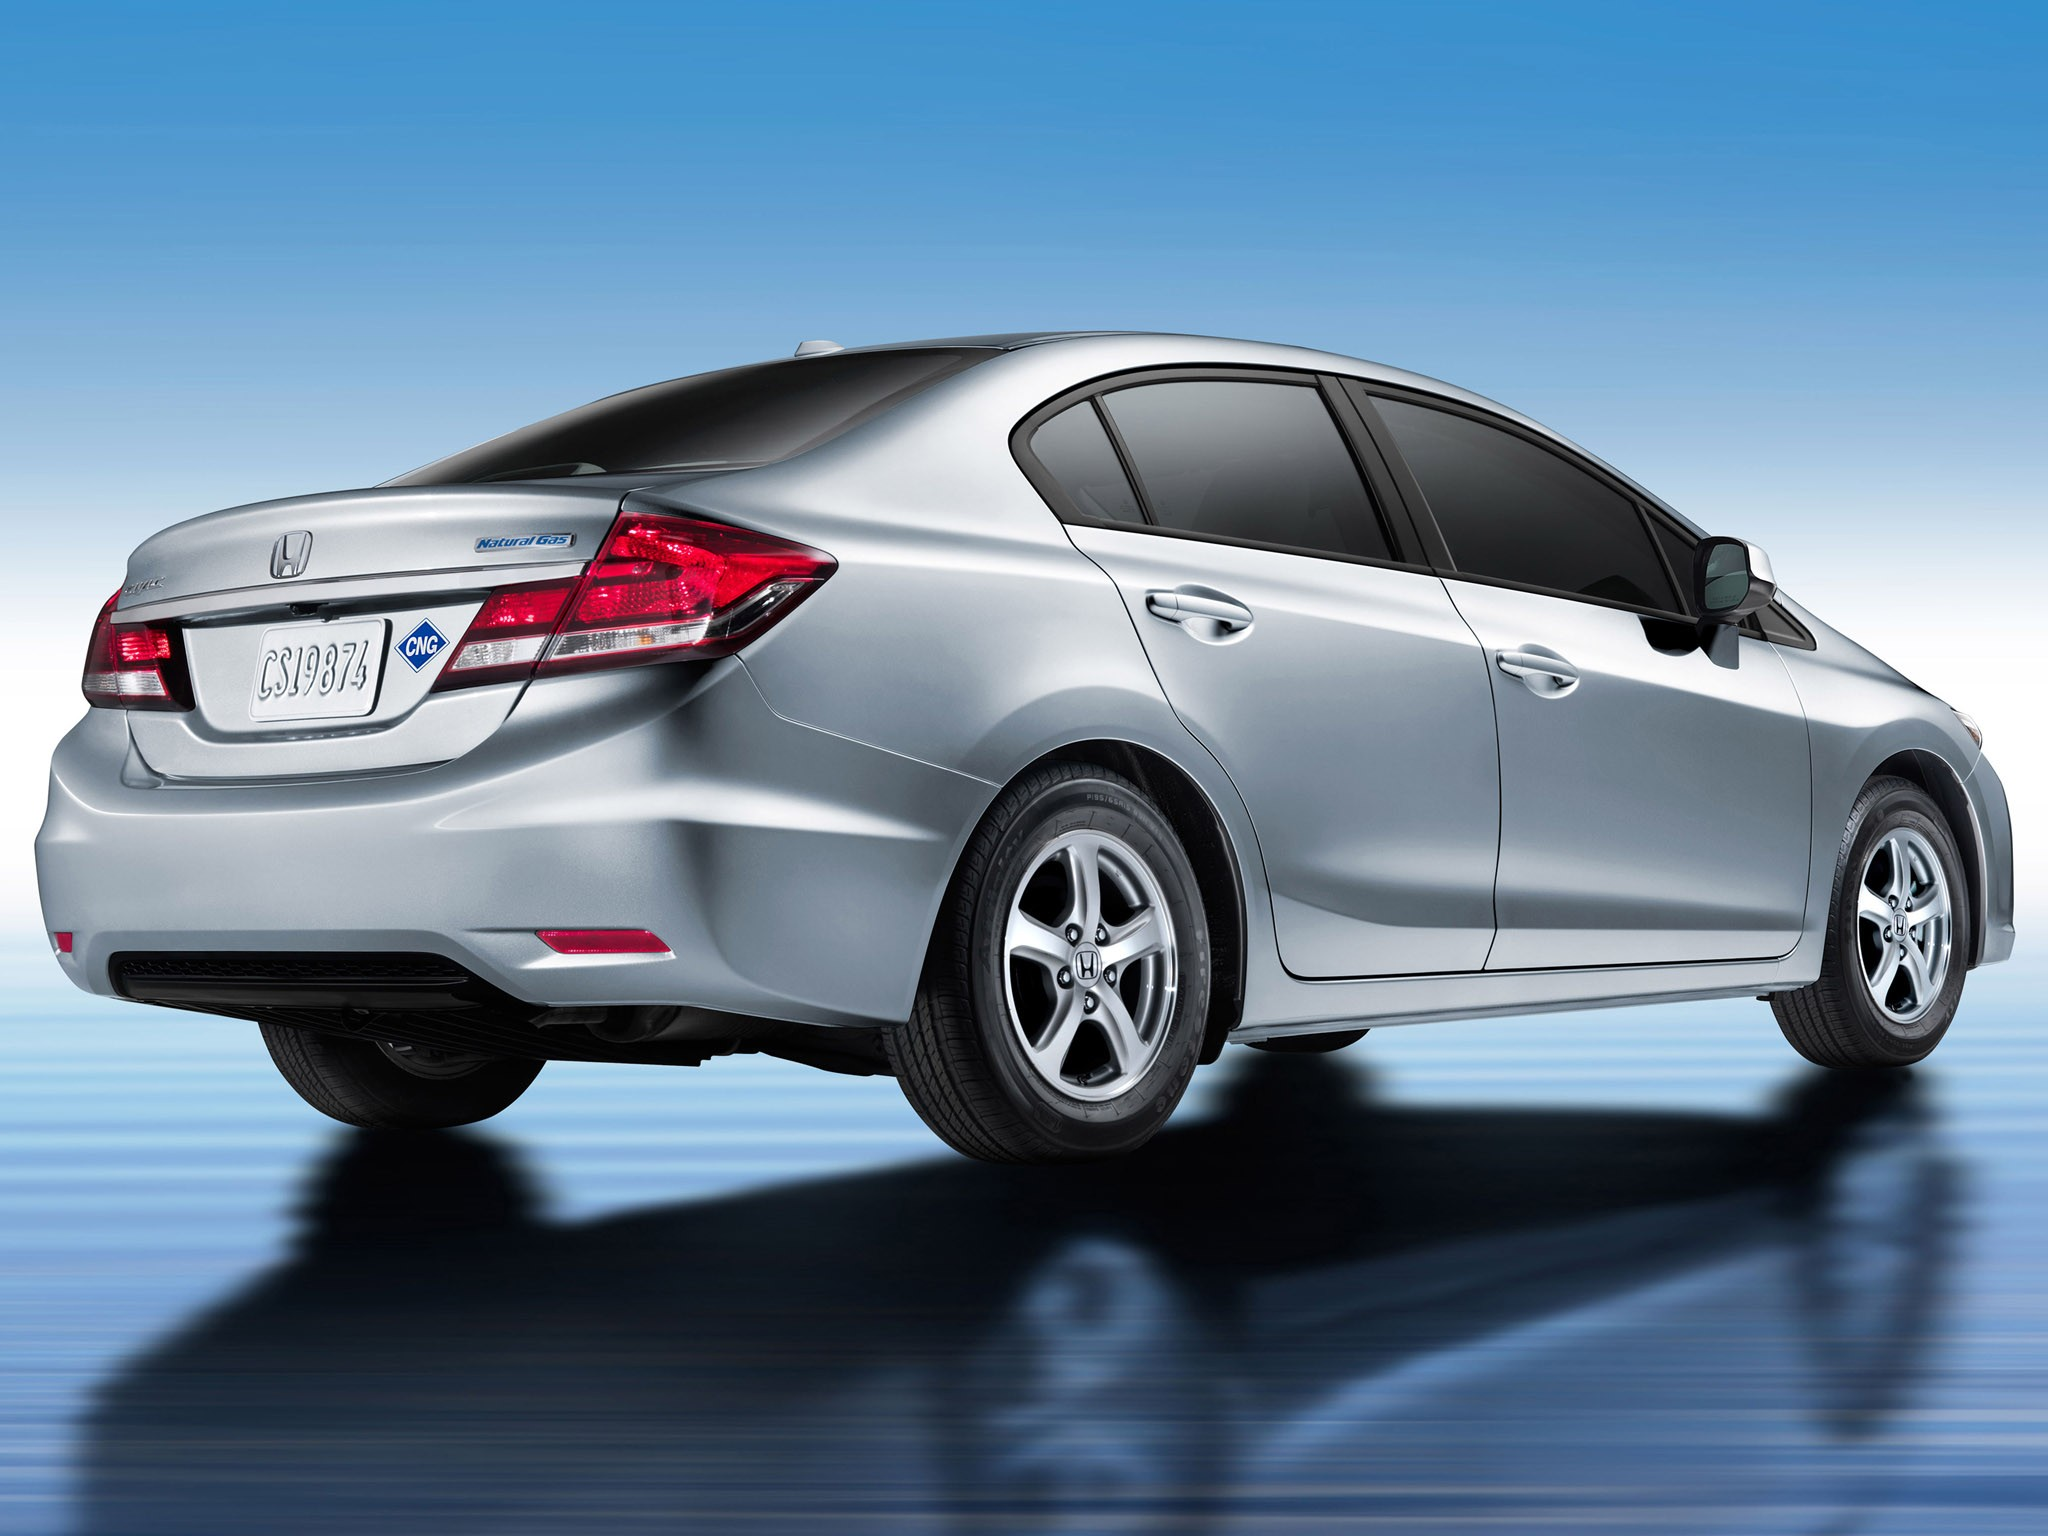 2013 Honda Civic CNG